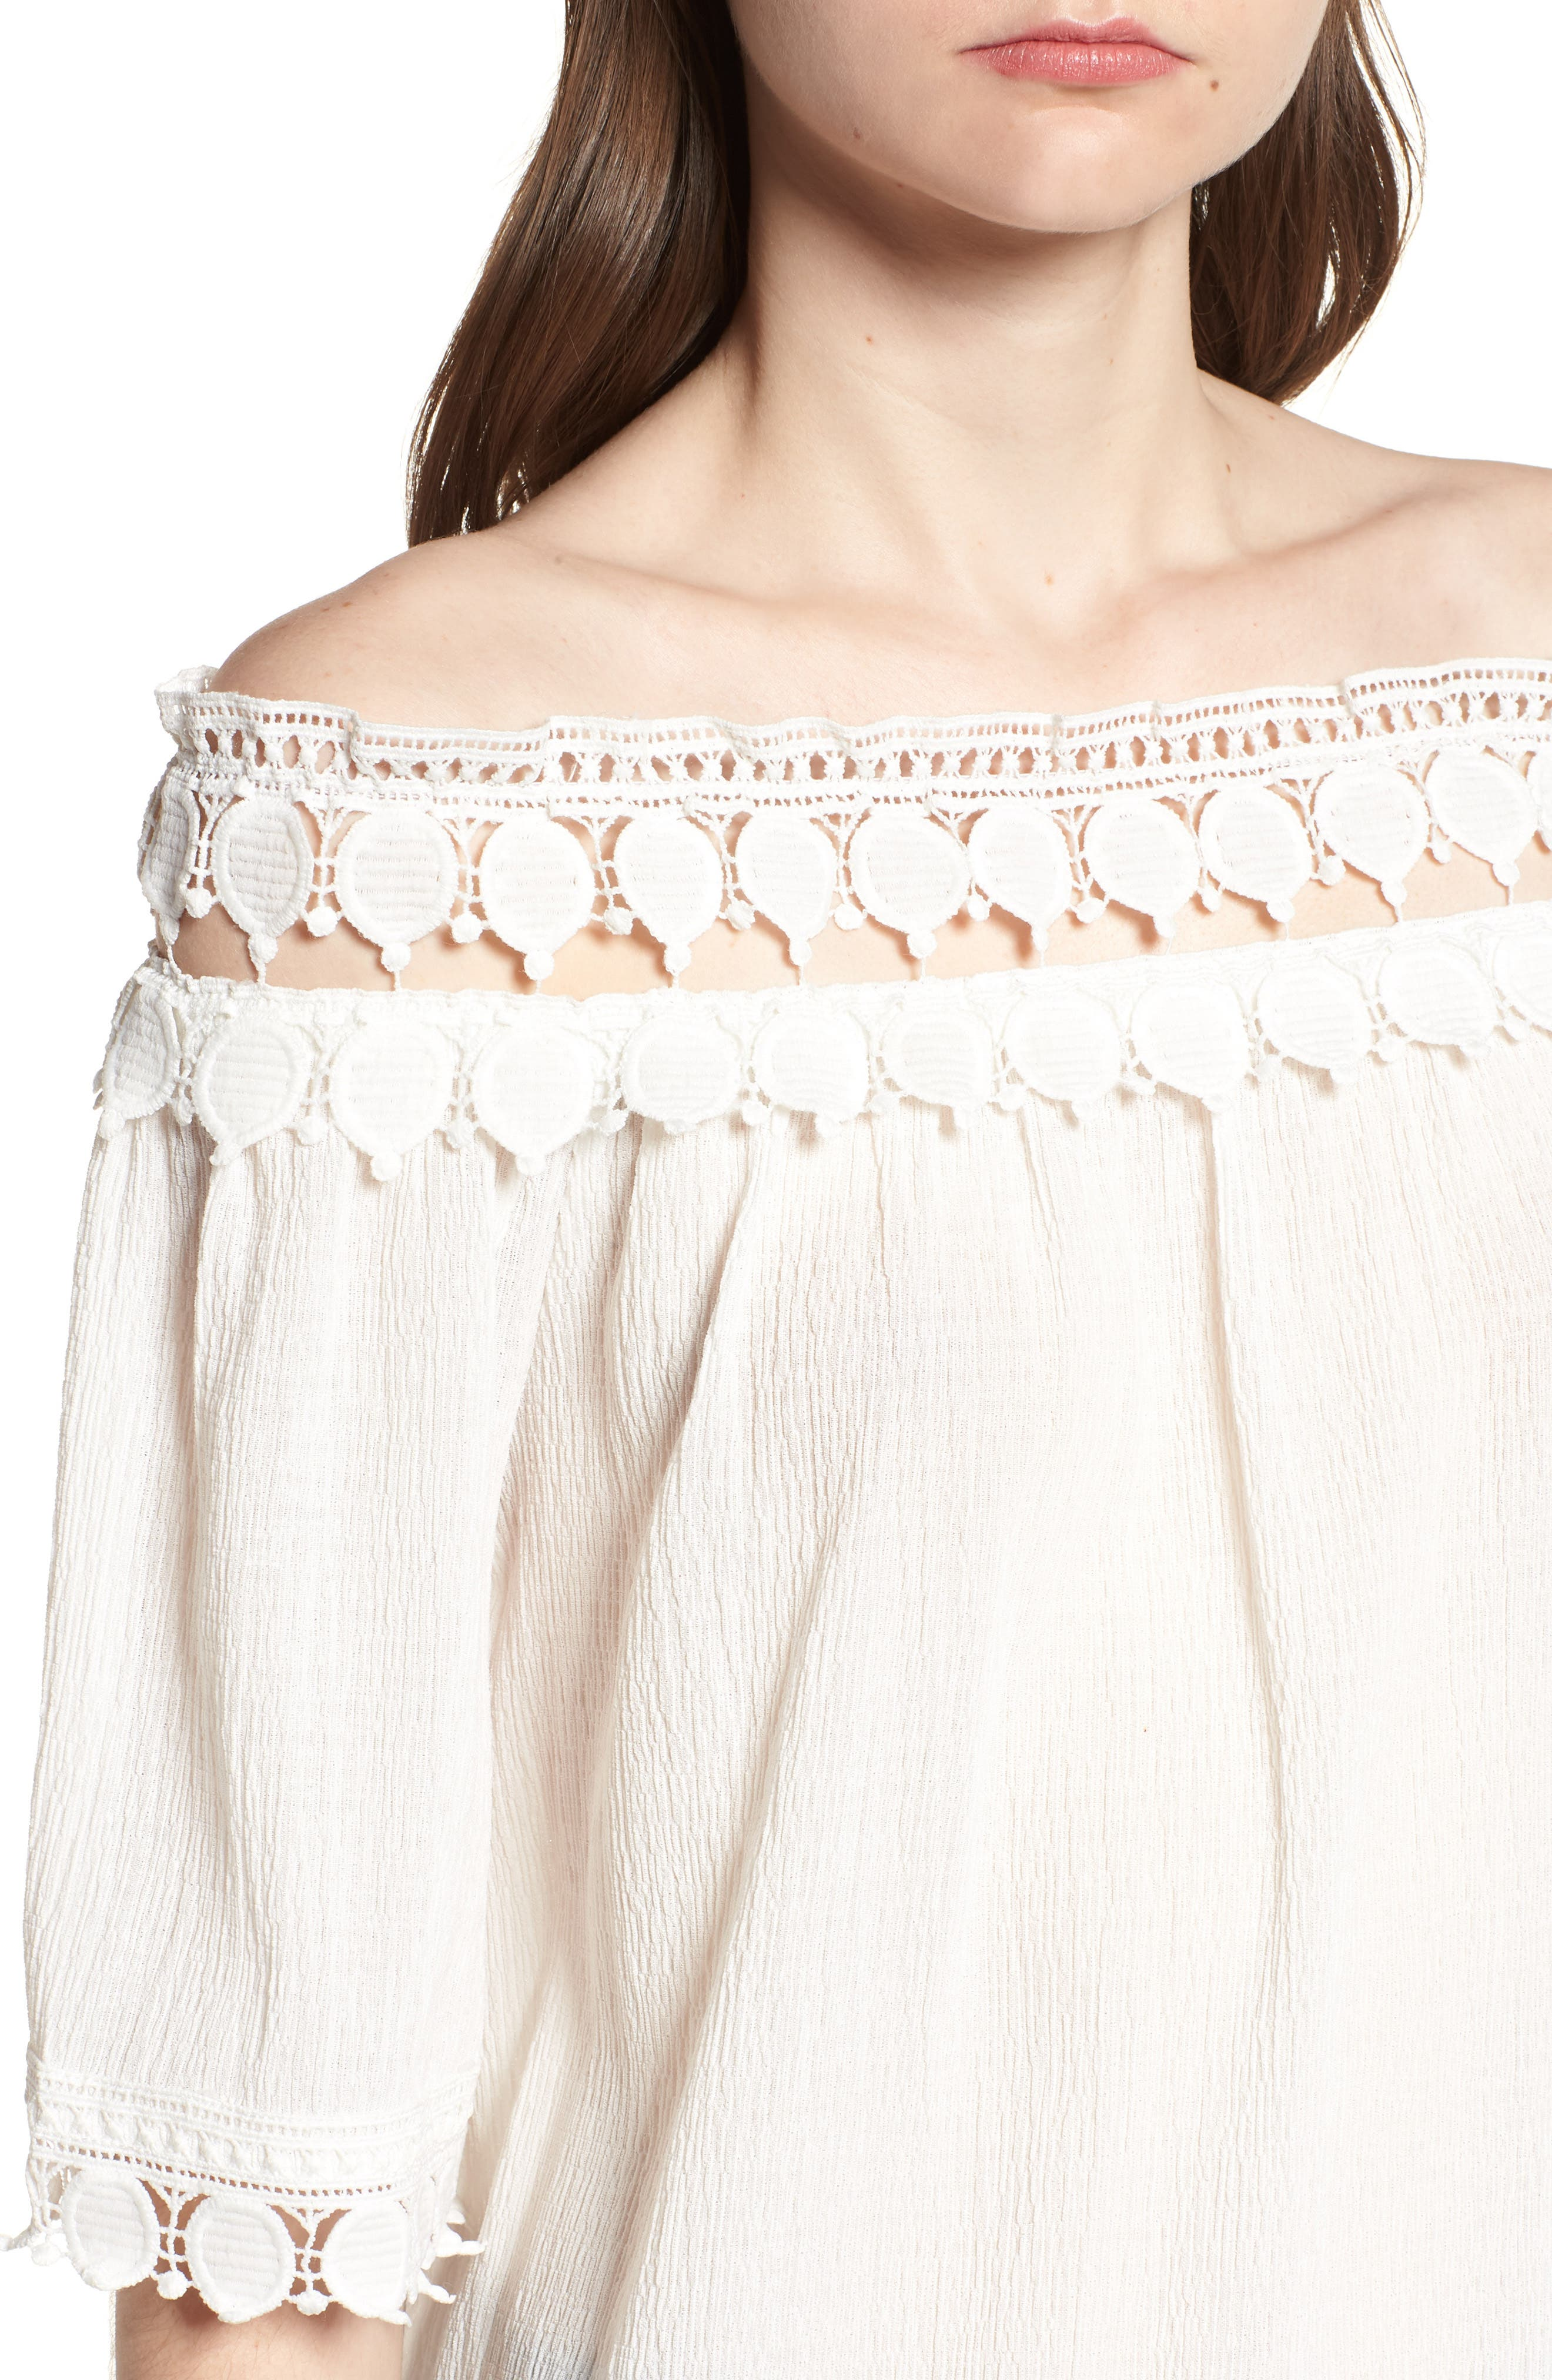 Bishop + Young Olivia Crochet Trim Off the Shoulder Top,                             Alternate thumbnail 4, color,                             White